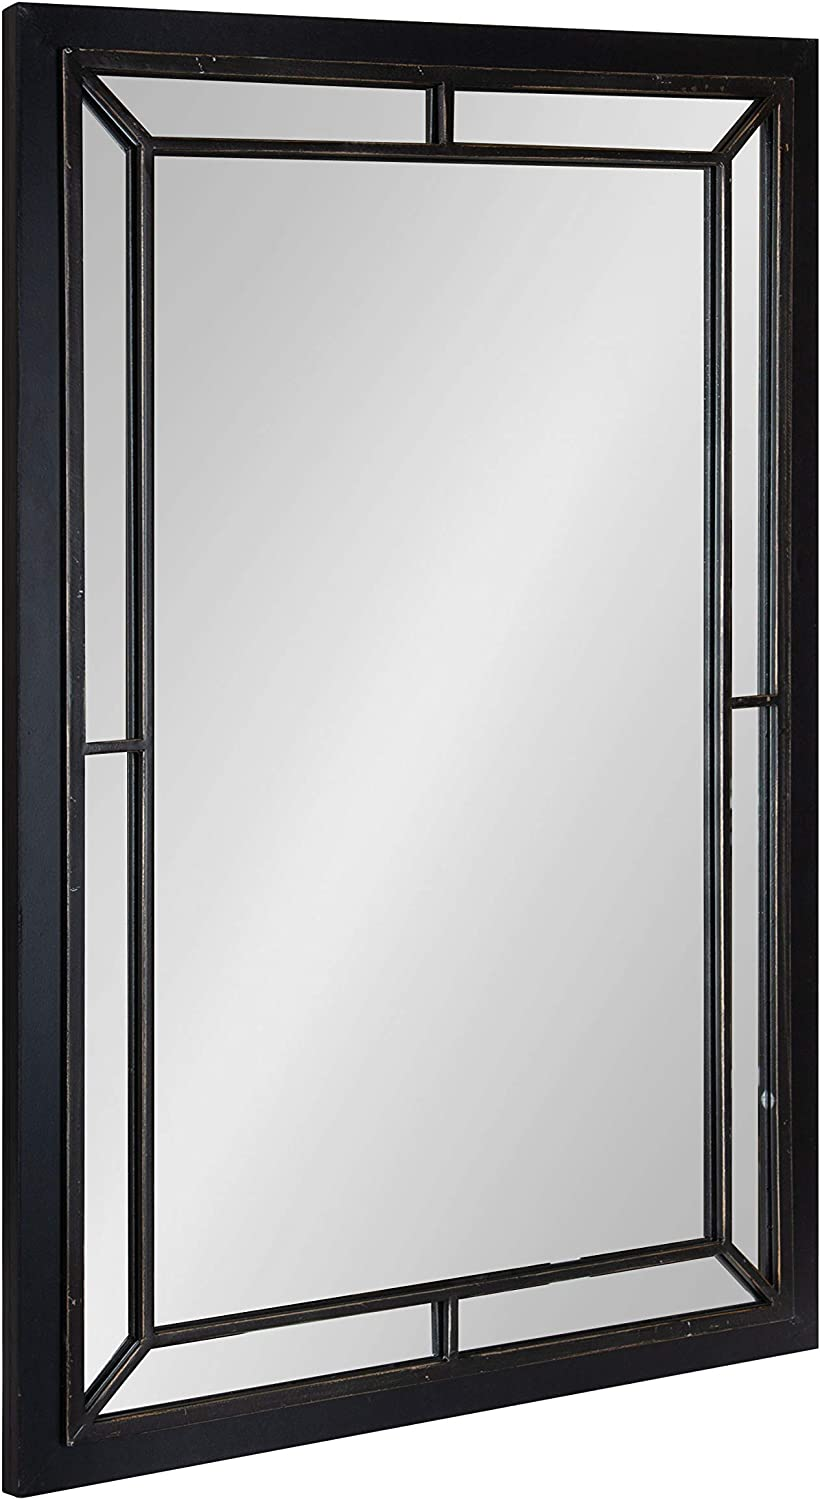 Kate and Laurel Audubon Farmhouse Wall 36 Special price Mirror Black D Challenge the lowest price of Japan x 24